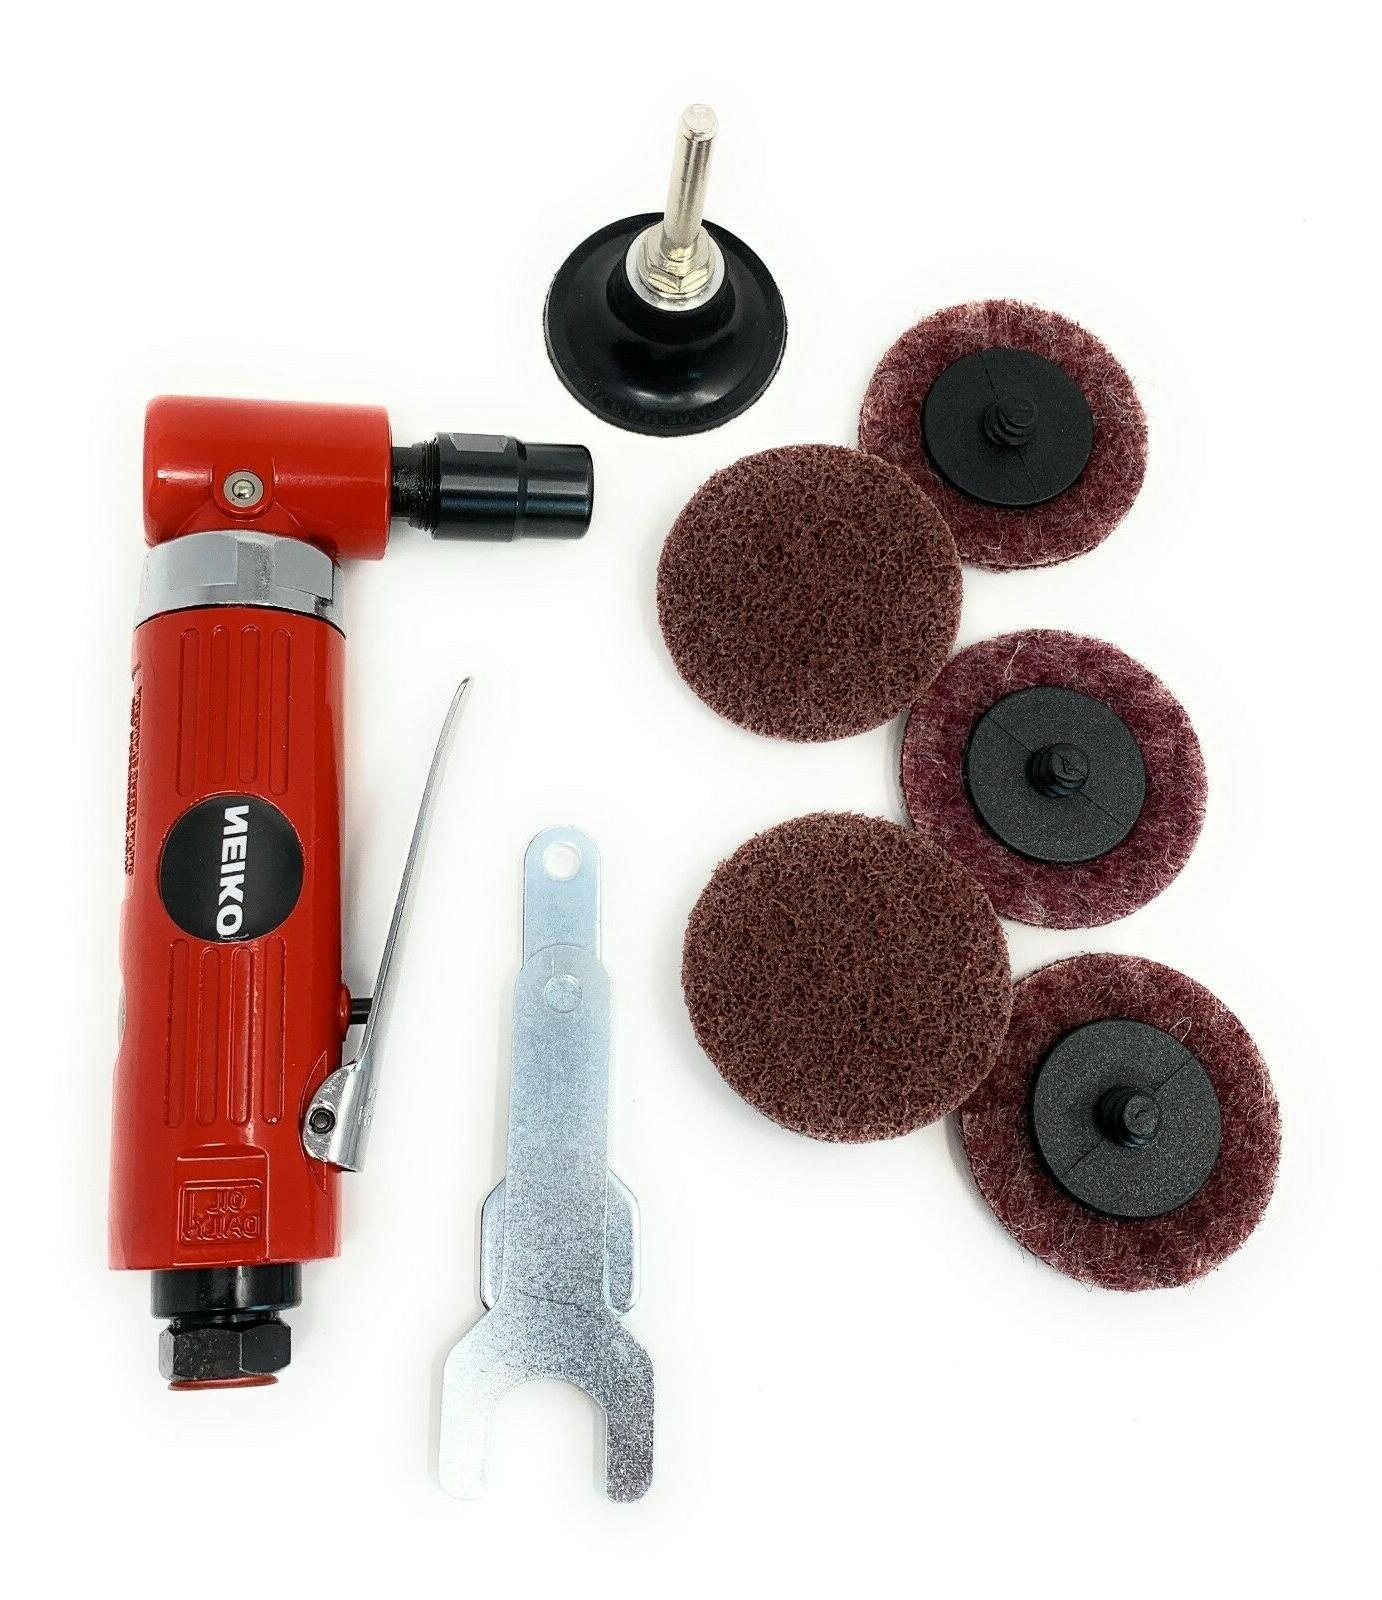 Valley Heavy Duty 1/4-inch Angle Air Die Grinder